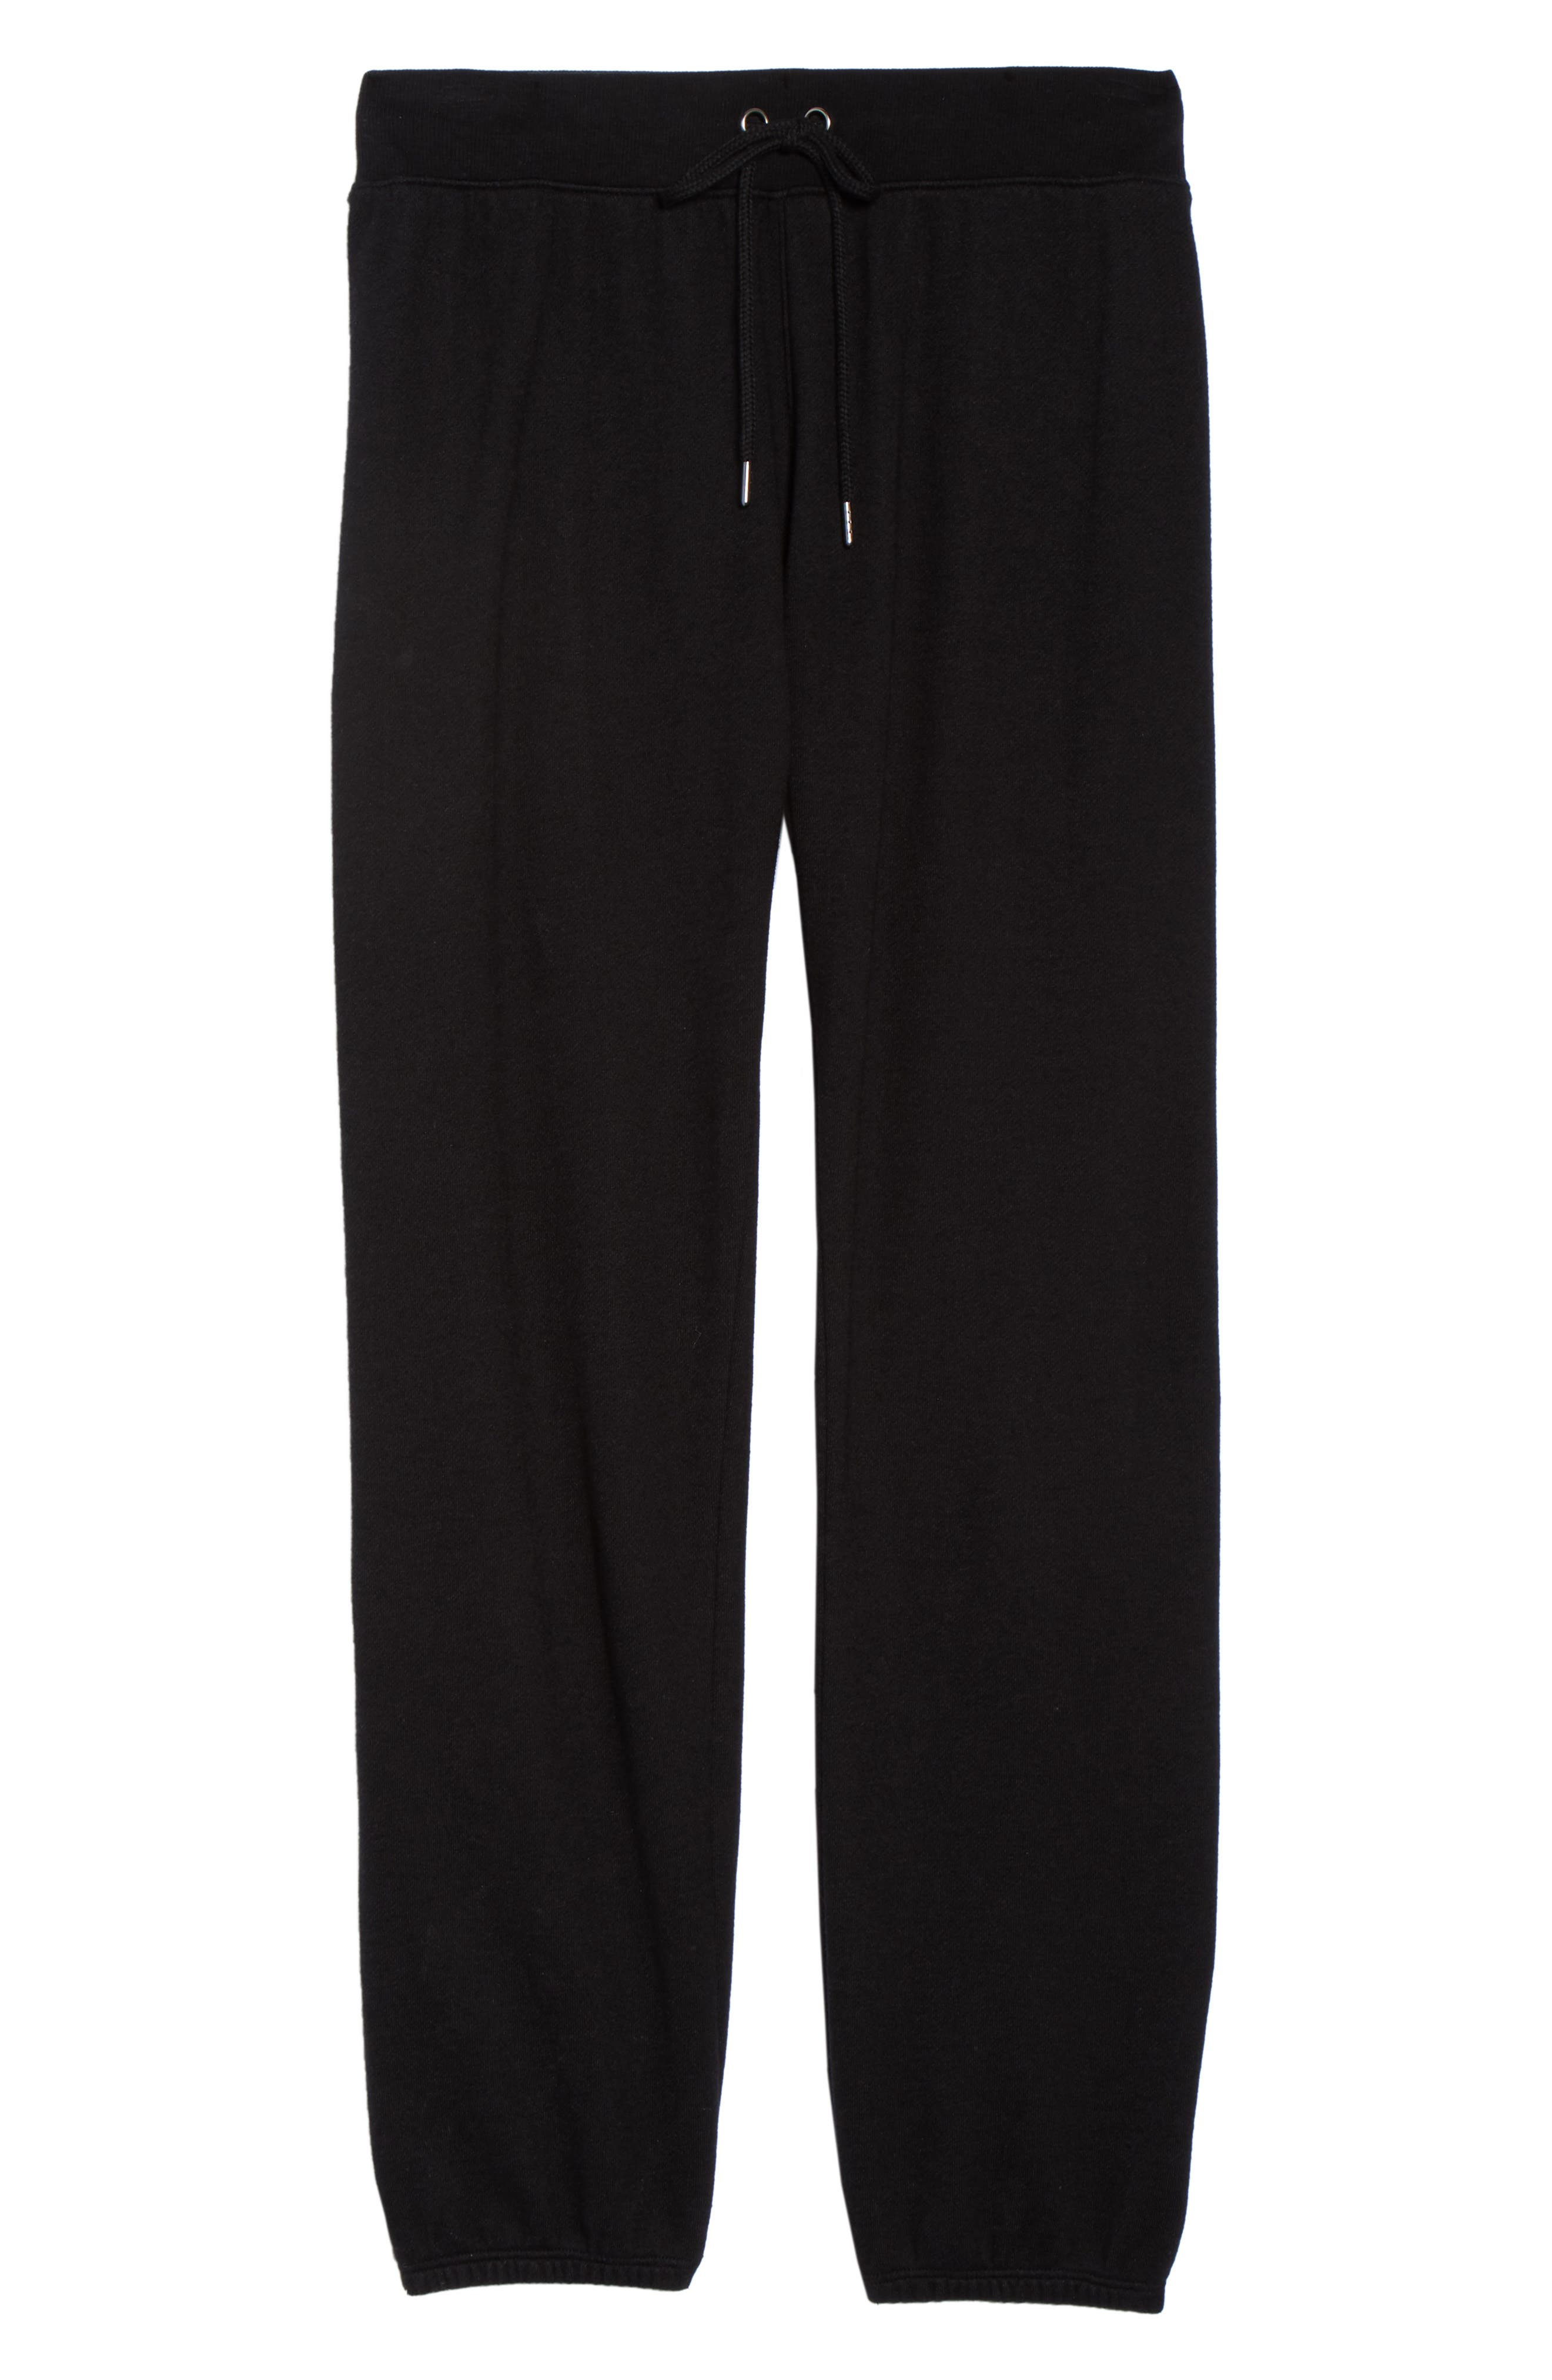 Loung Sweatpants,                             Alternate thumbnail 6, color,                             FADED BLACK